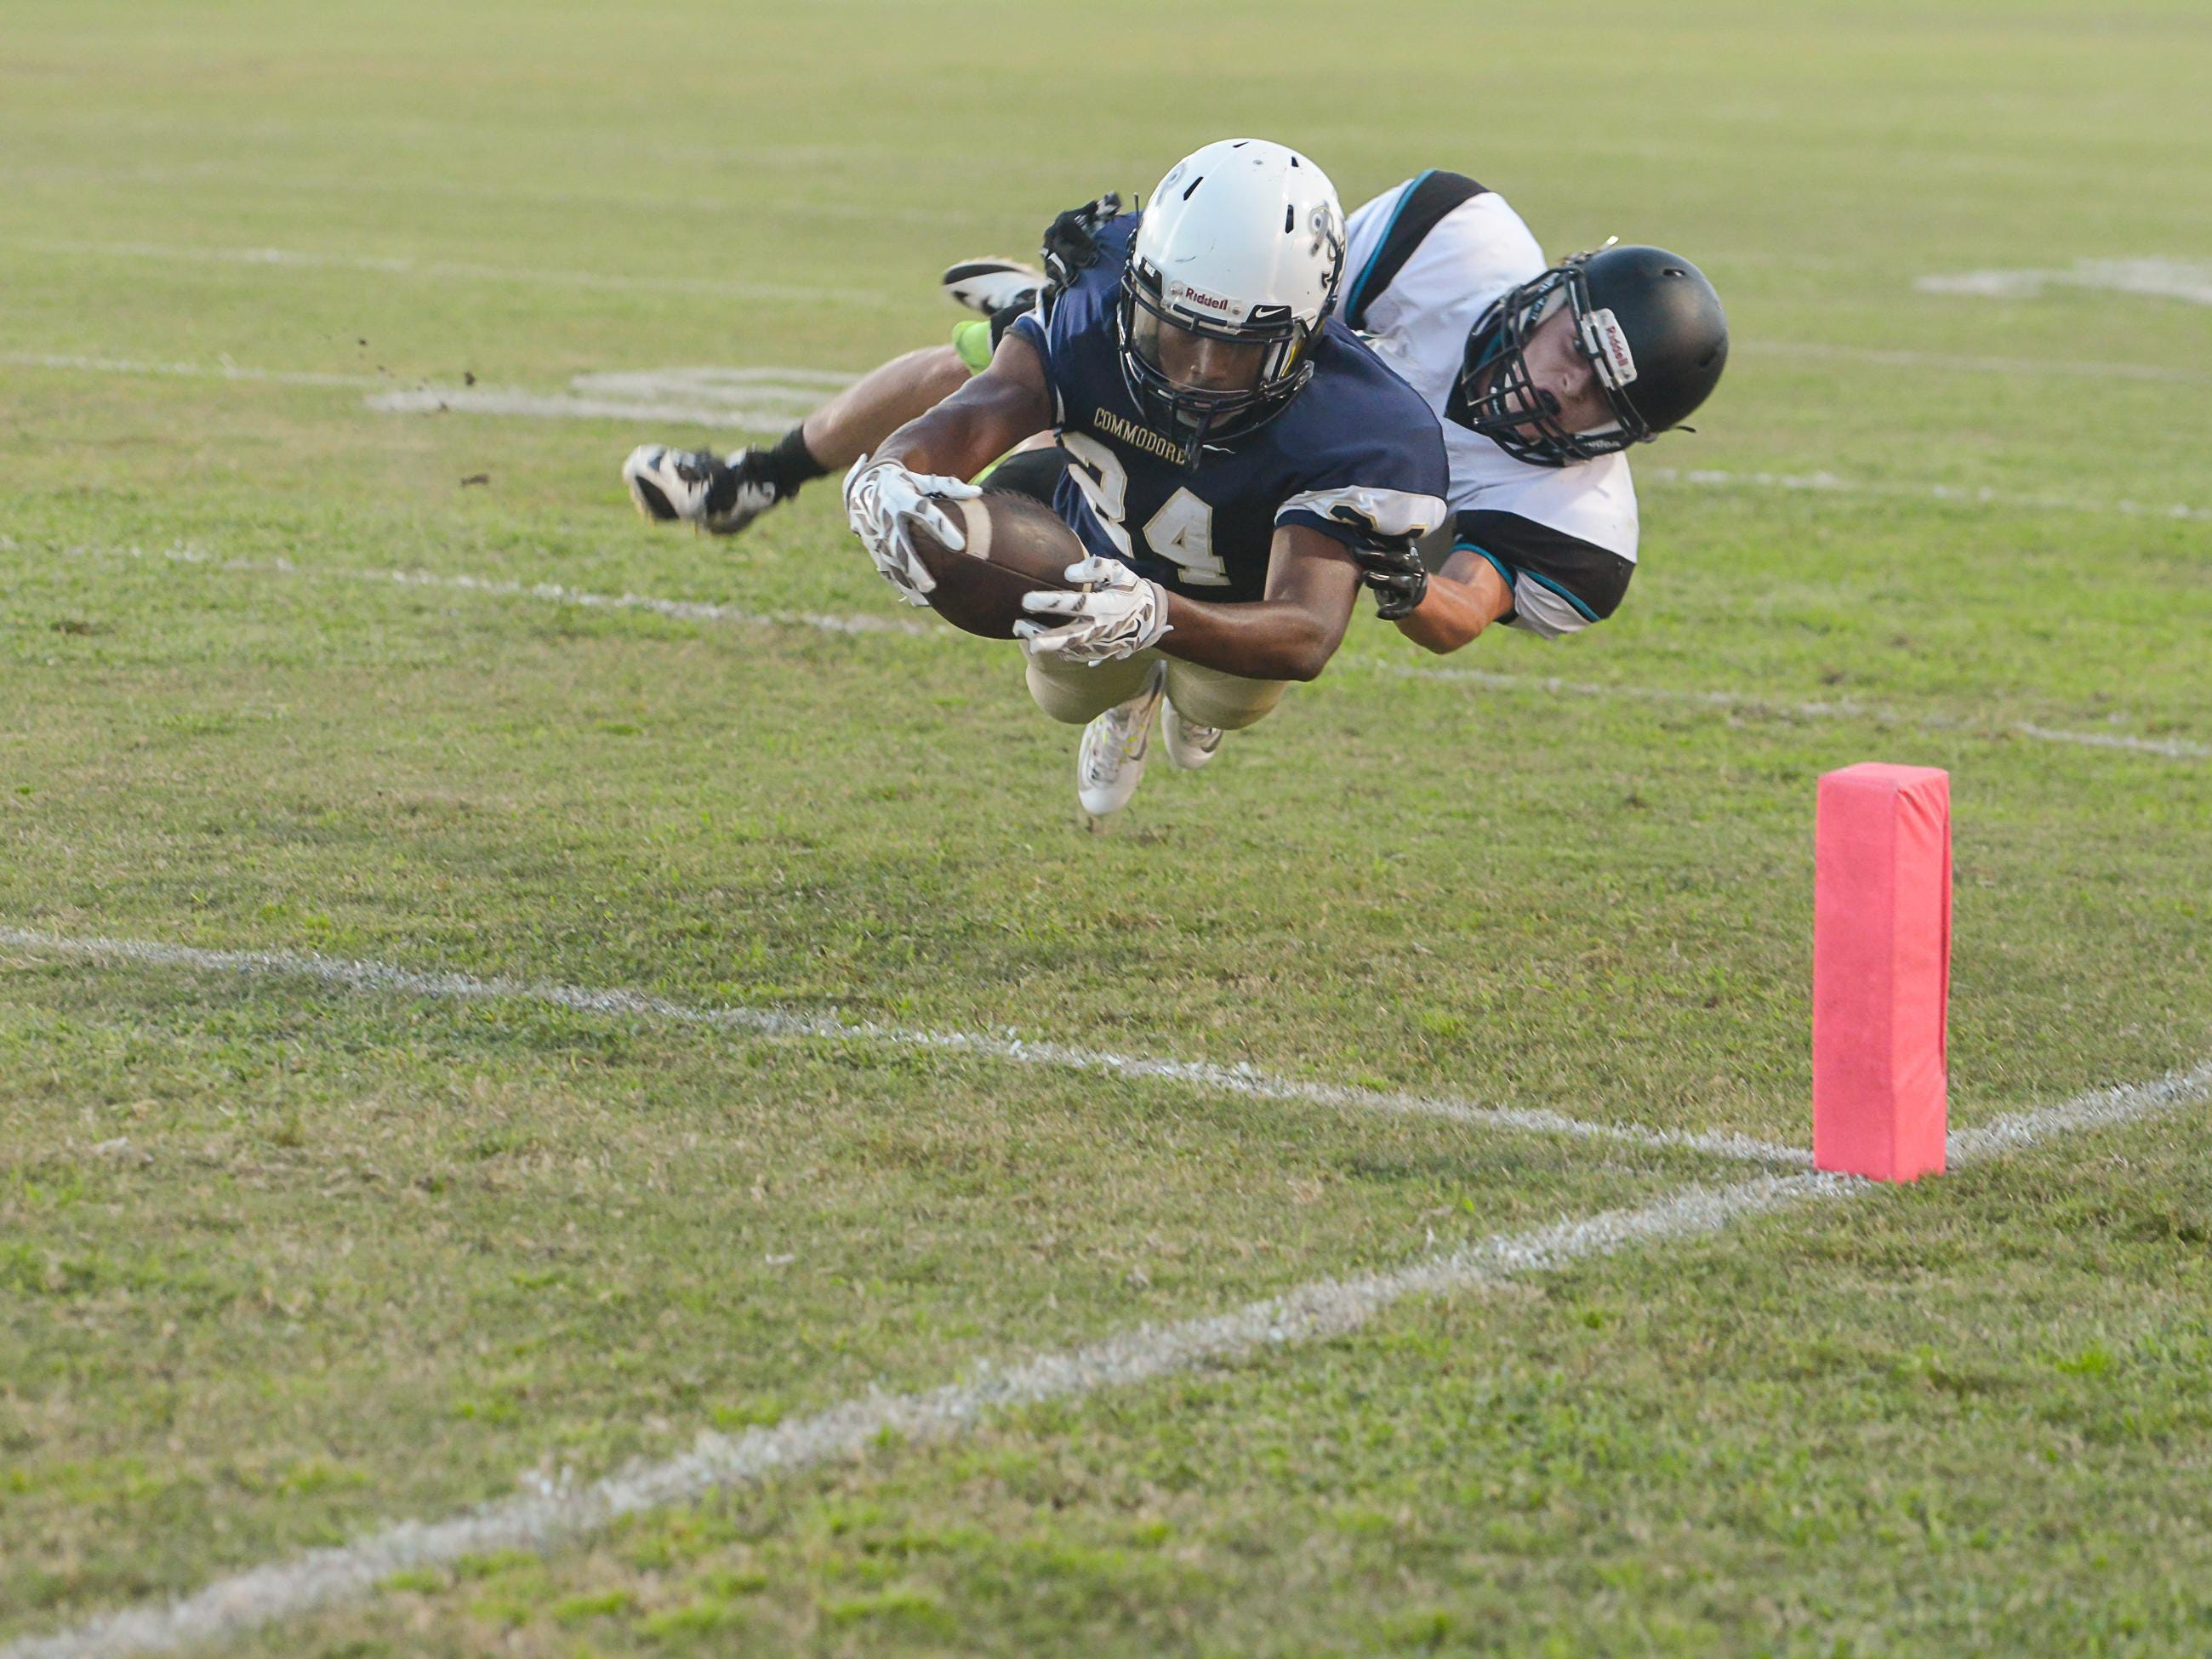 Jalen Shelton scores for Eau Gallie High during the game against Bayside. (Photo by Amanda Stratford, for FLORIDA TODAY)